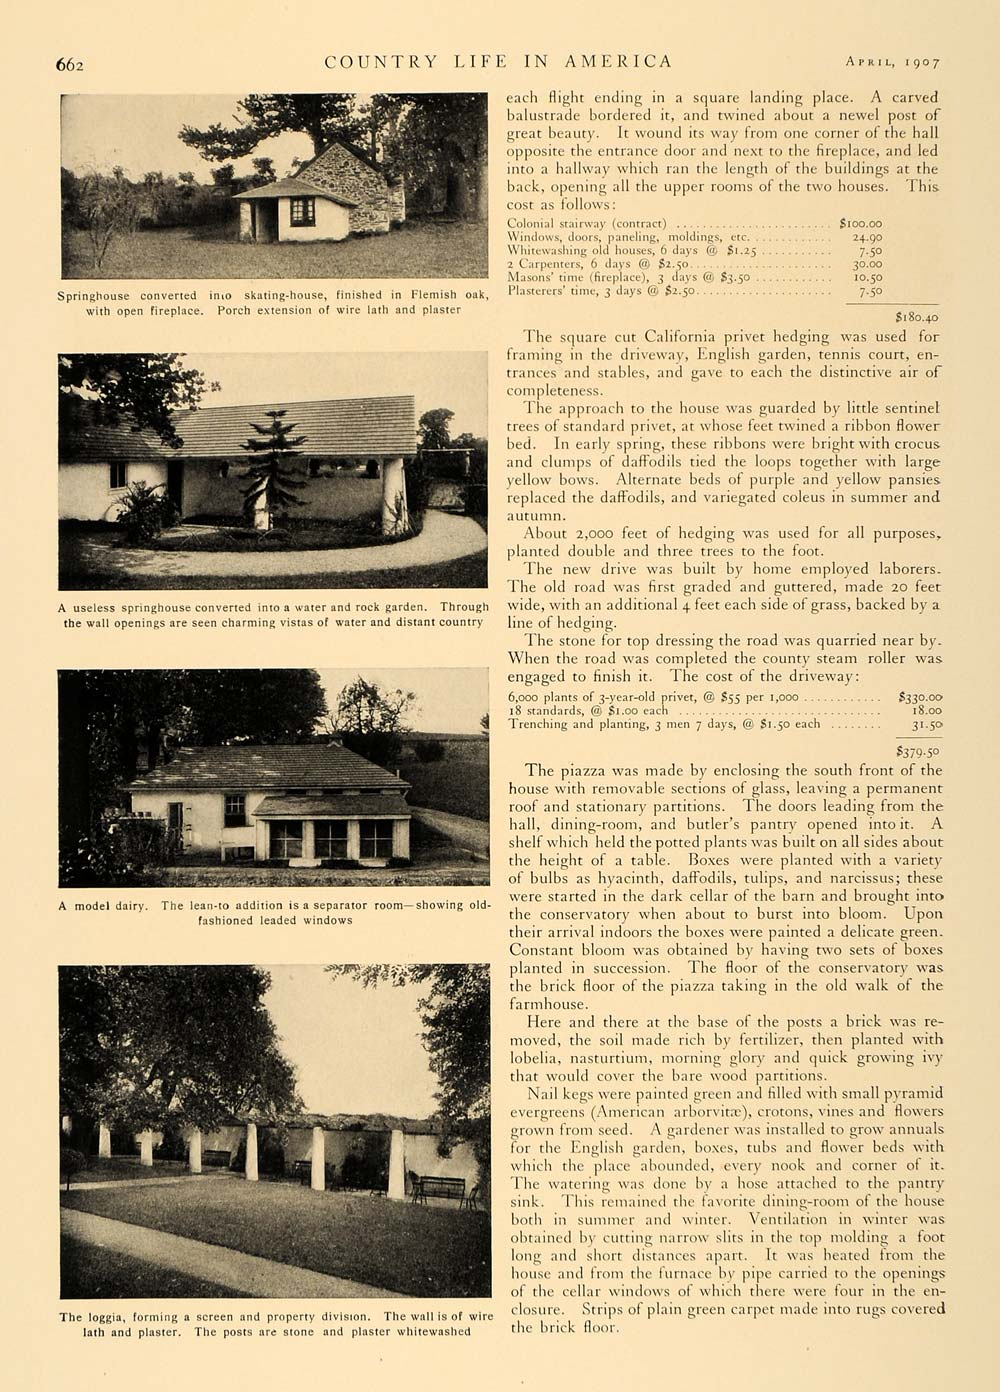 1907 Article Old Farmhouse Remodeled Harriet C. Bryant - ORIGINAL CL5